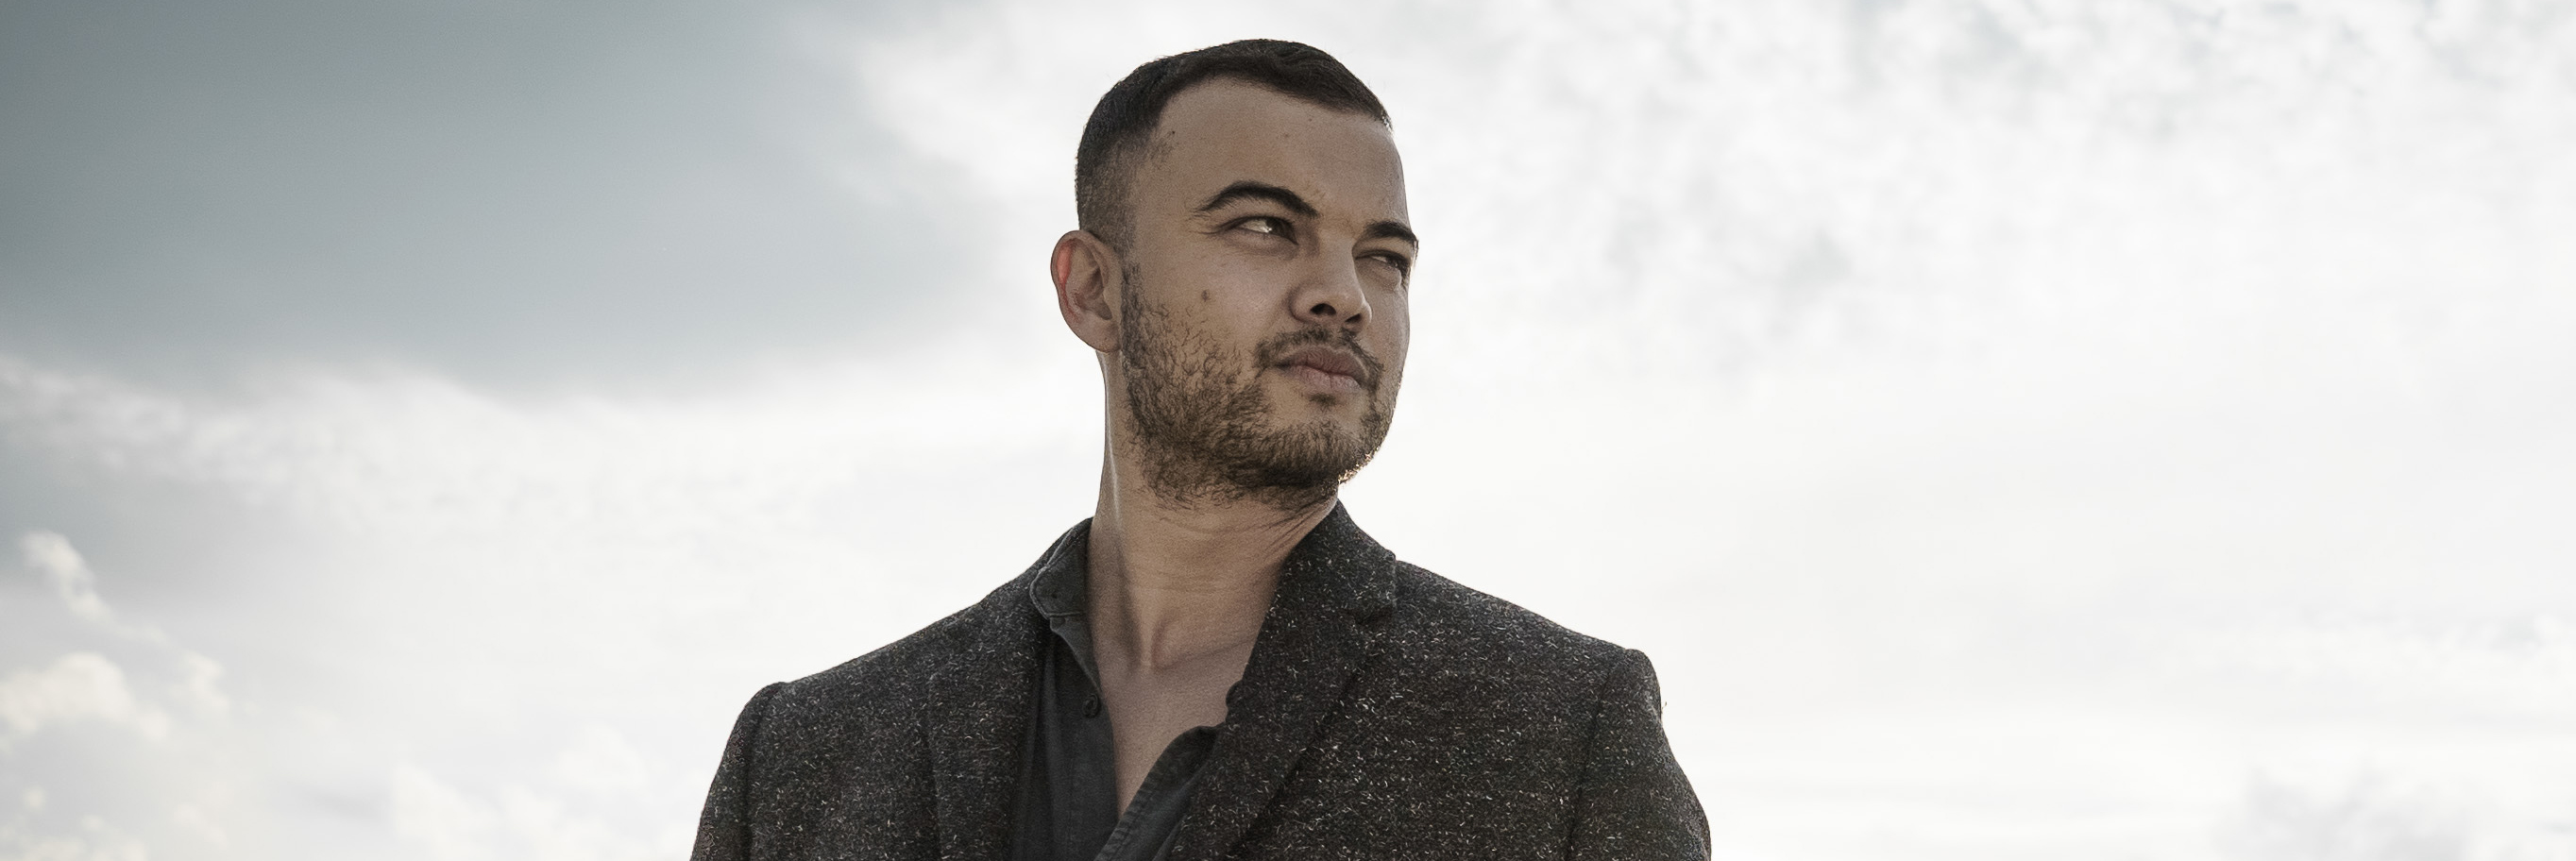 GUY SEBASTIAN RELEASES 'PART 1 EP'